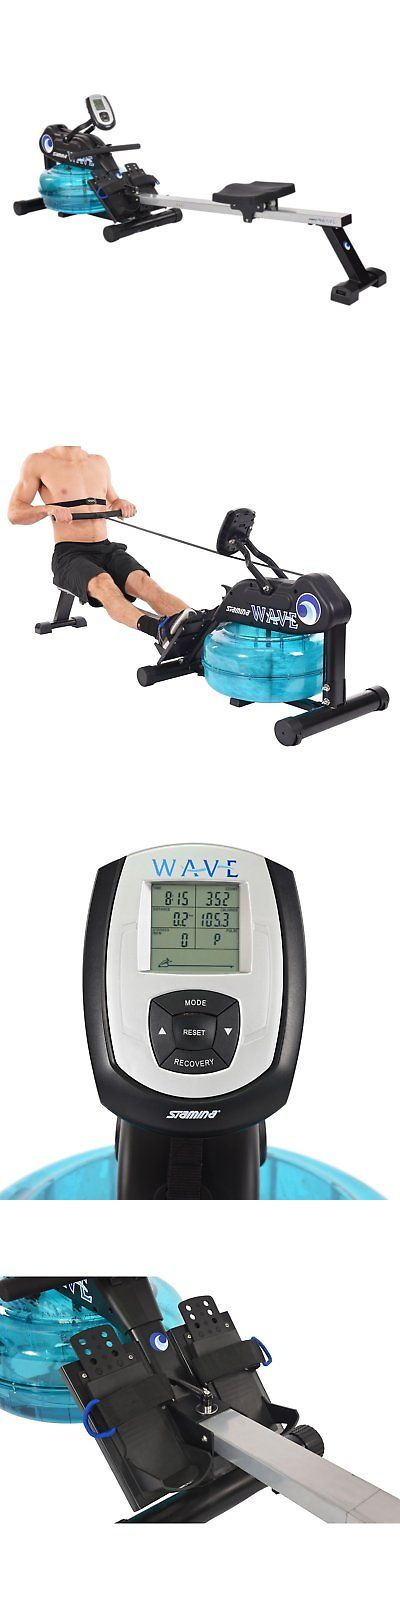 Rowing Machines 28060: Stamina 1450 Wave Water Rowing Machine -> BUY IT NOW ONLY: $699 on eBay!